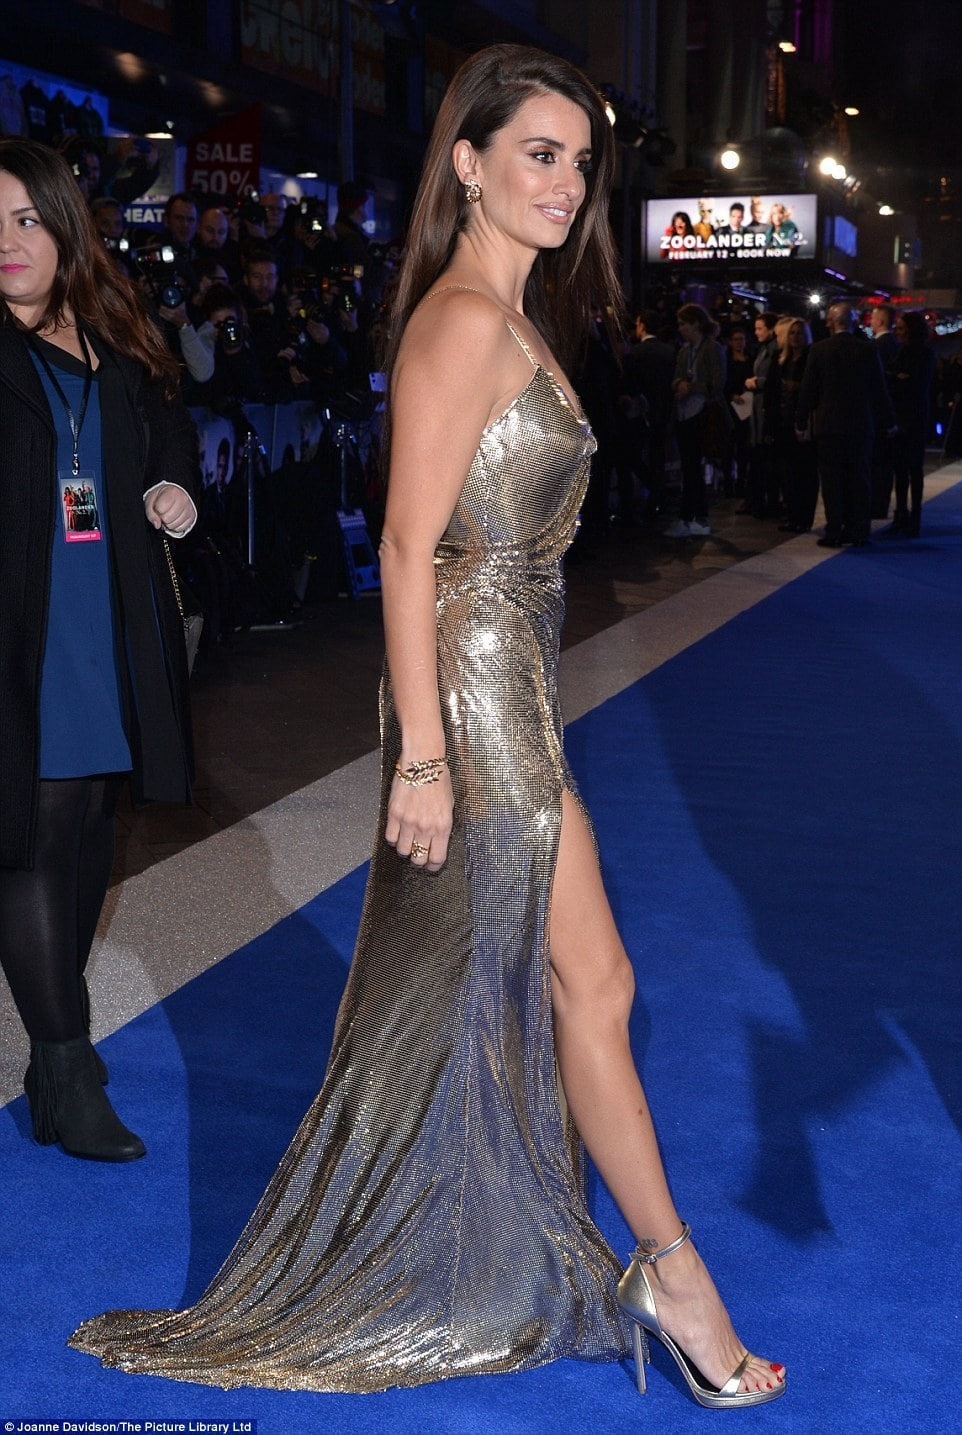 Penelope Cruz Sexy Feet in high heels